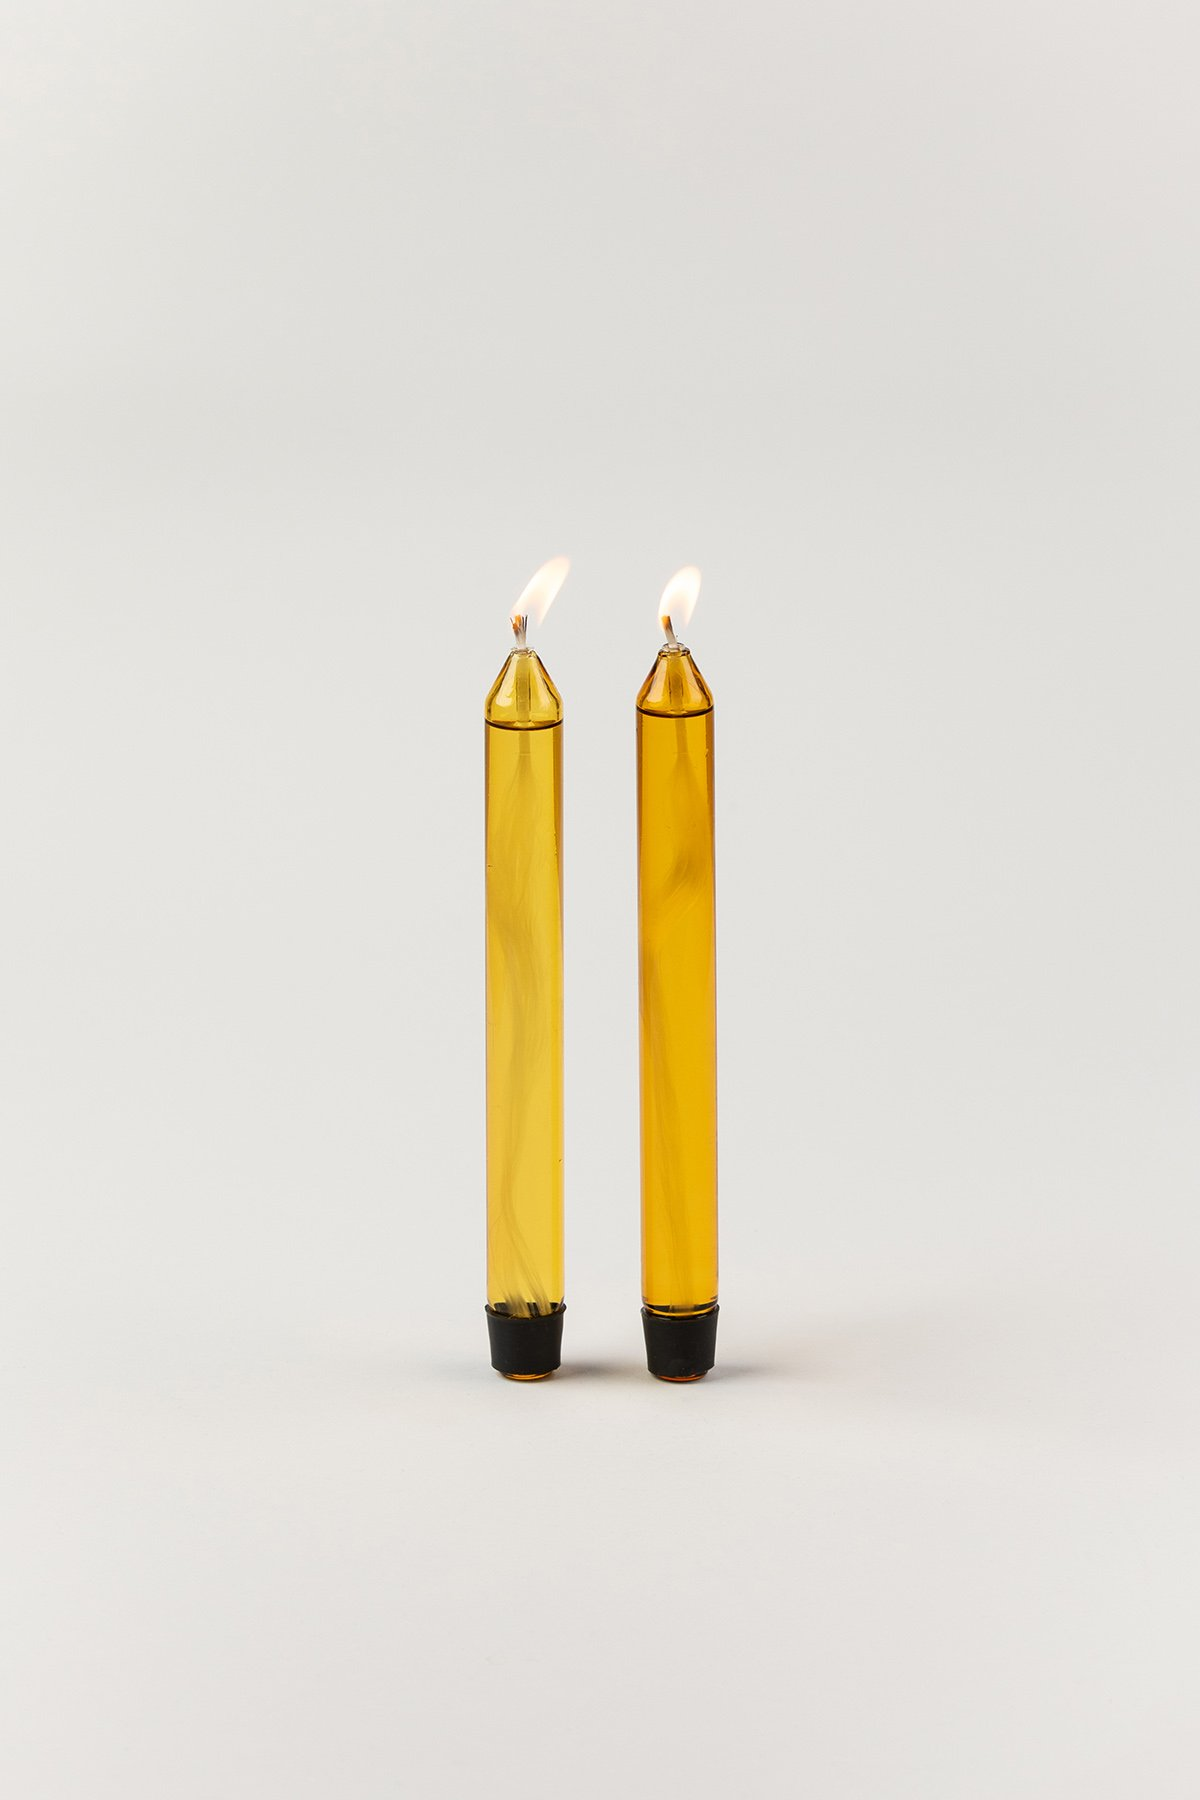 Studio About Candle Glass Candle Oil Yellow 2-pack